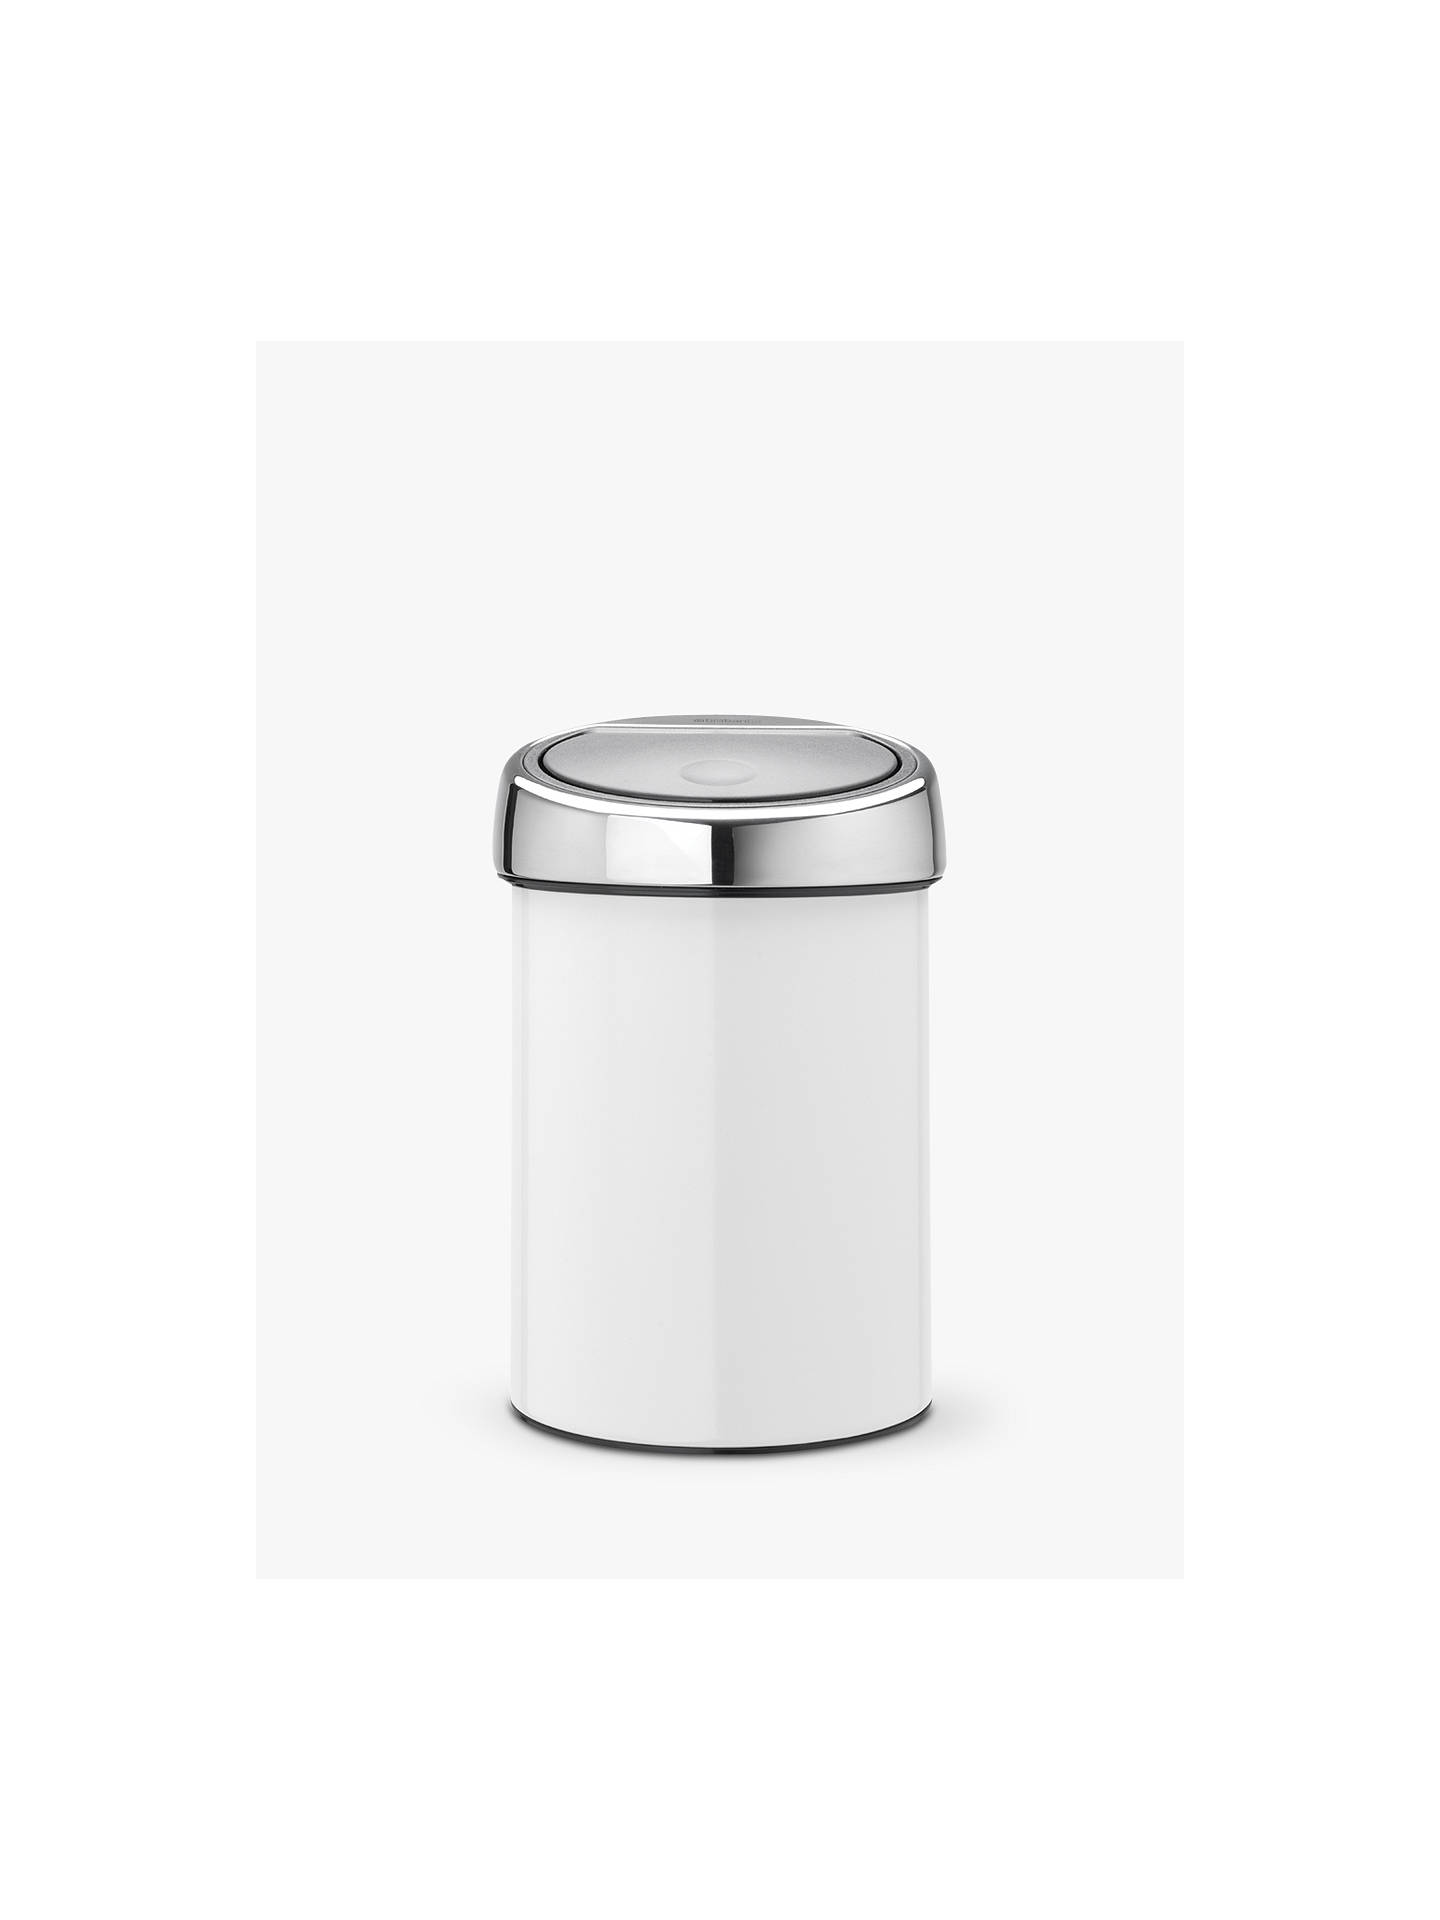 brabantia touch bin gloss white 3l at john lewis partners. Black Bedroom Furniture Sets. Home Design Ideas